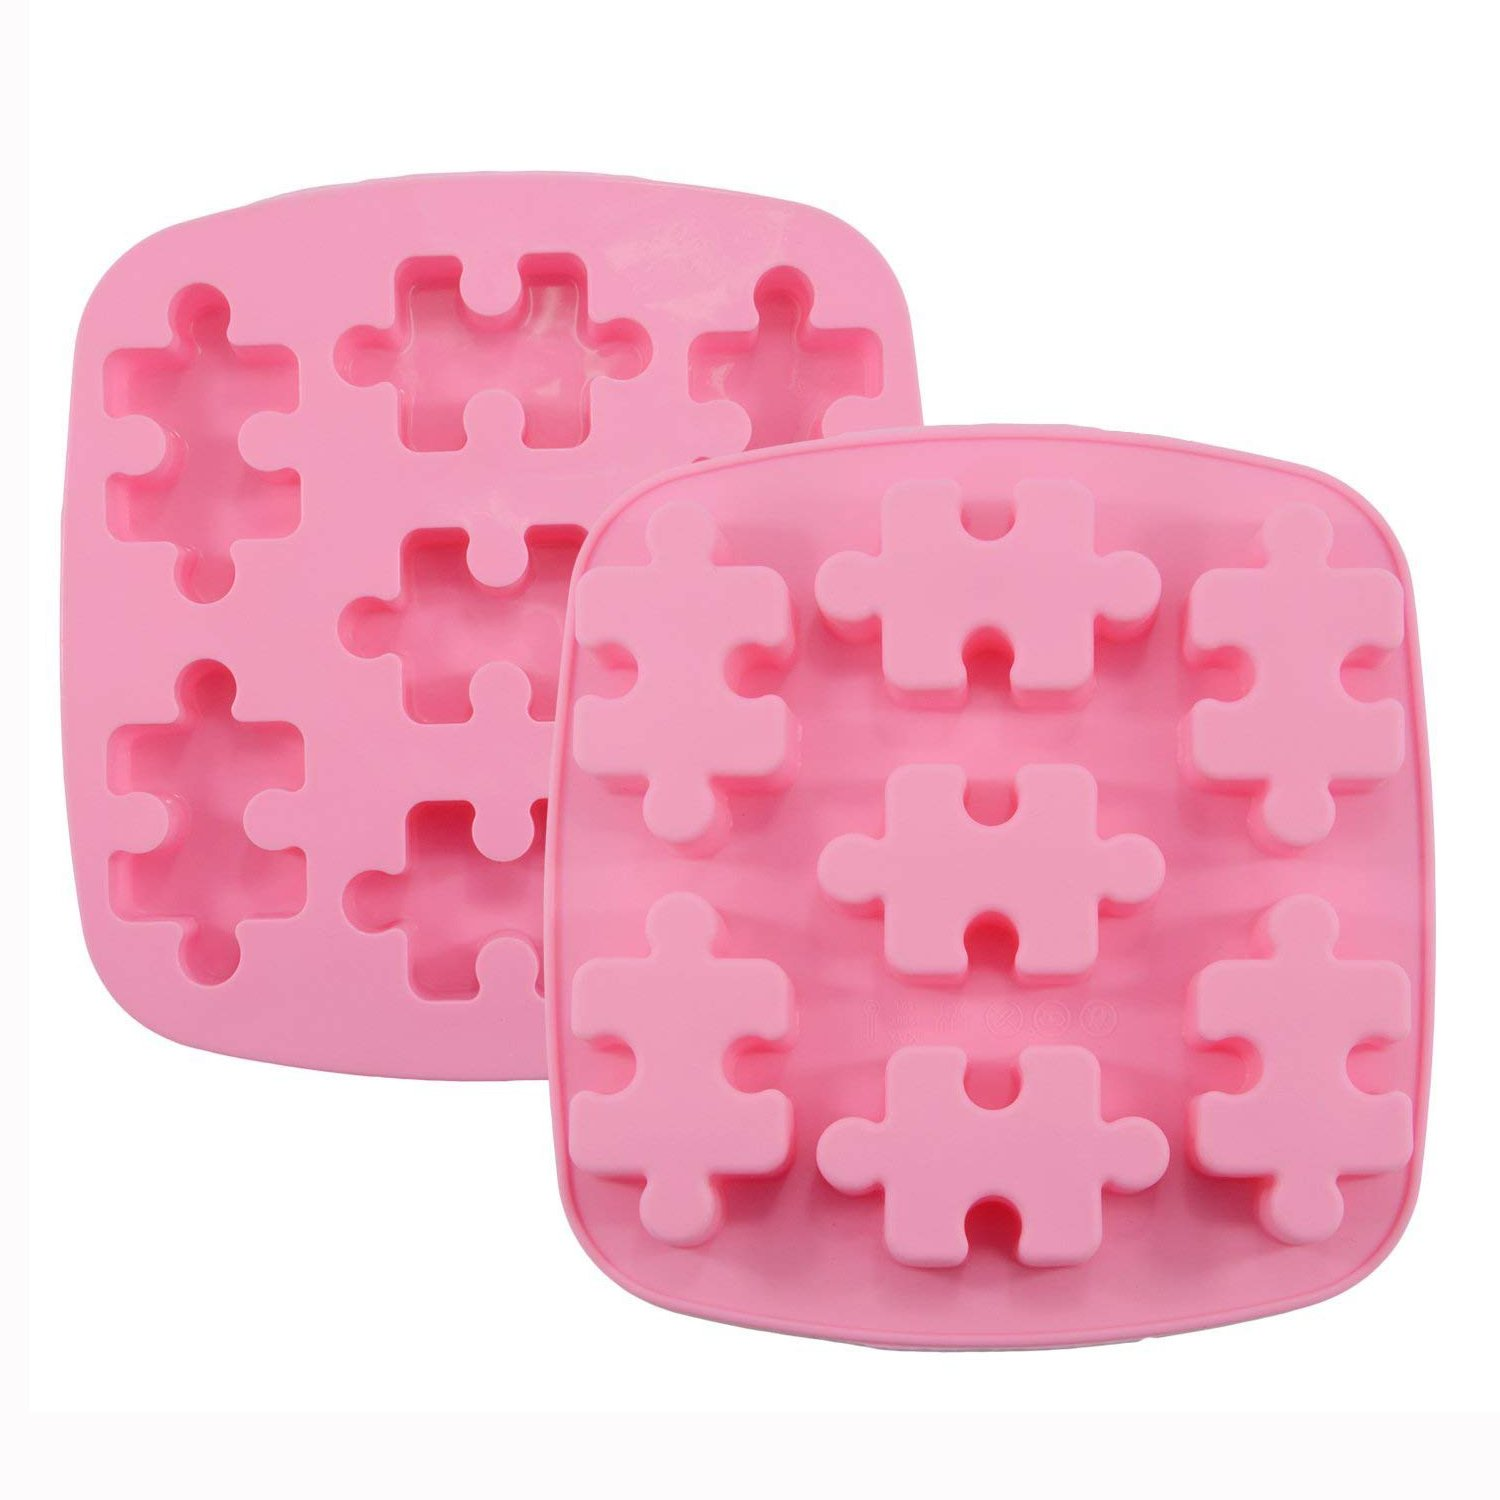 HINMAY Puzzle Piece Mold Puzzle Crayons Maker - Set of 2 - Non-stick Heat Resistance Silicone Puzzle Mold Perfect for Wax Samples, Chocolate, Jello shots, Pudding, Bath Bomb, Soap and Ice Cube etc.